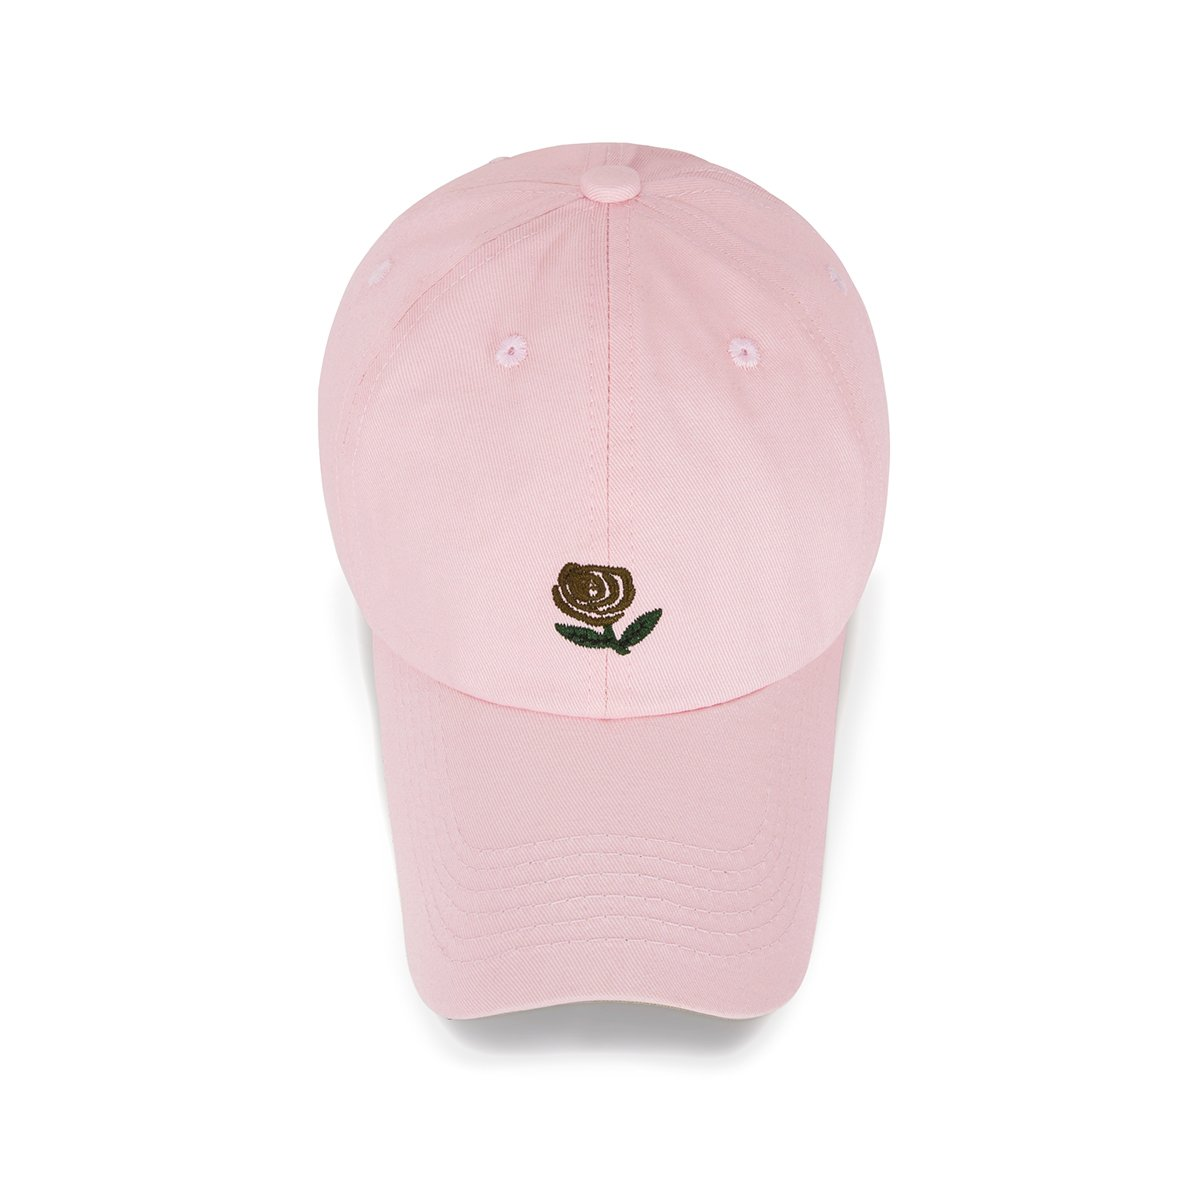 CHOSUR Baseball Cap Cotton Dad Golf Hat Cute Pink Cap for Girls Adjusable Snapback Hip Hop Cap with Flower Rose Embroidery (Pink)